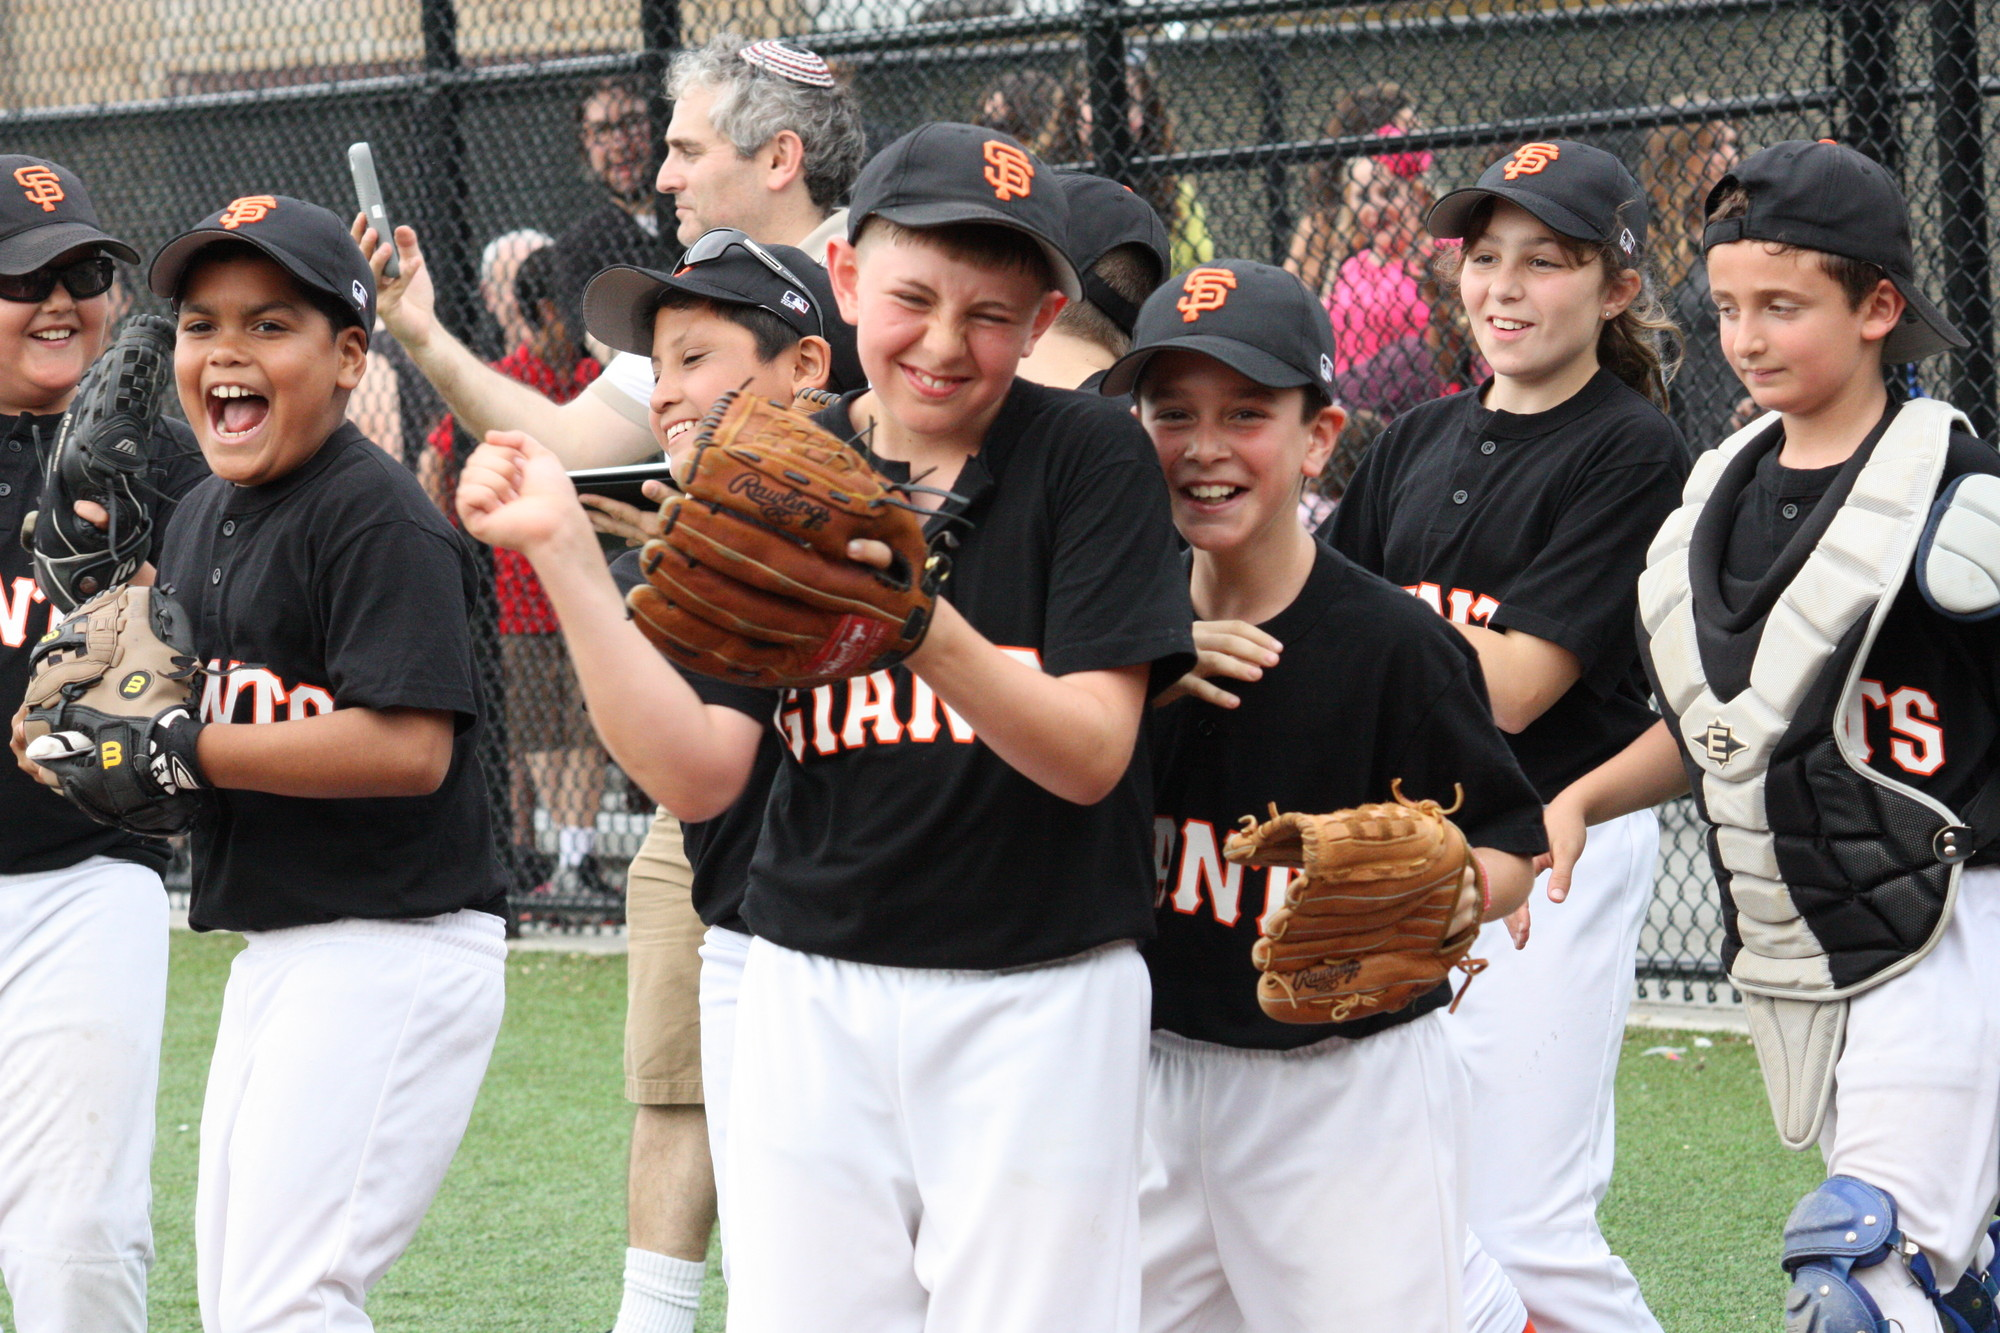 Photos by Lizzie Kirshenbaum/Herald